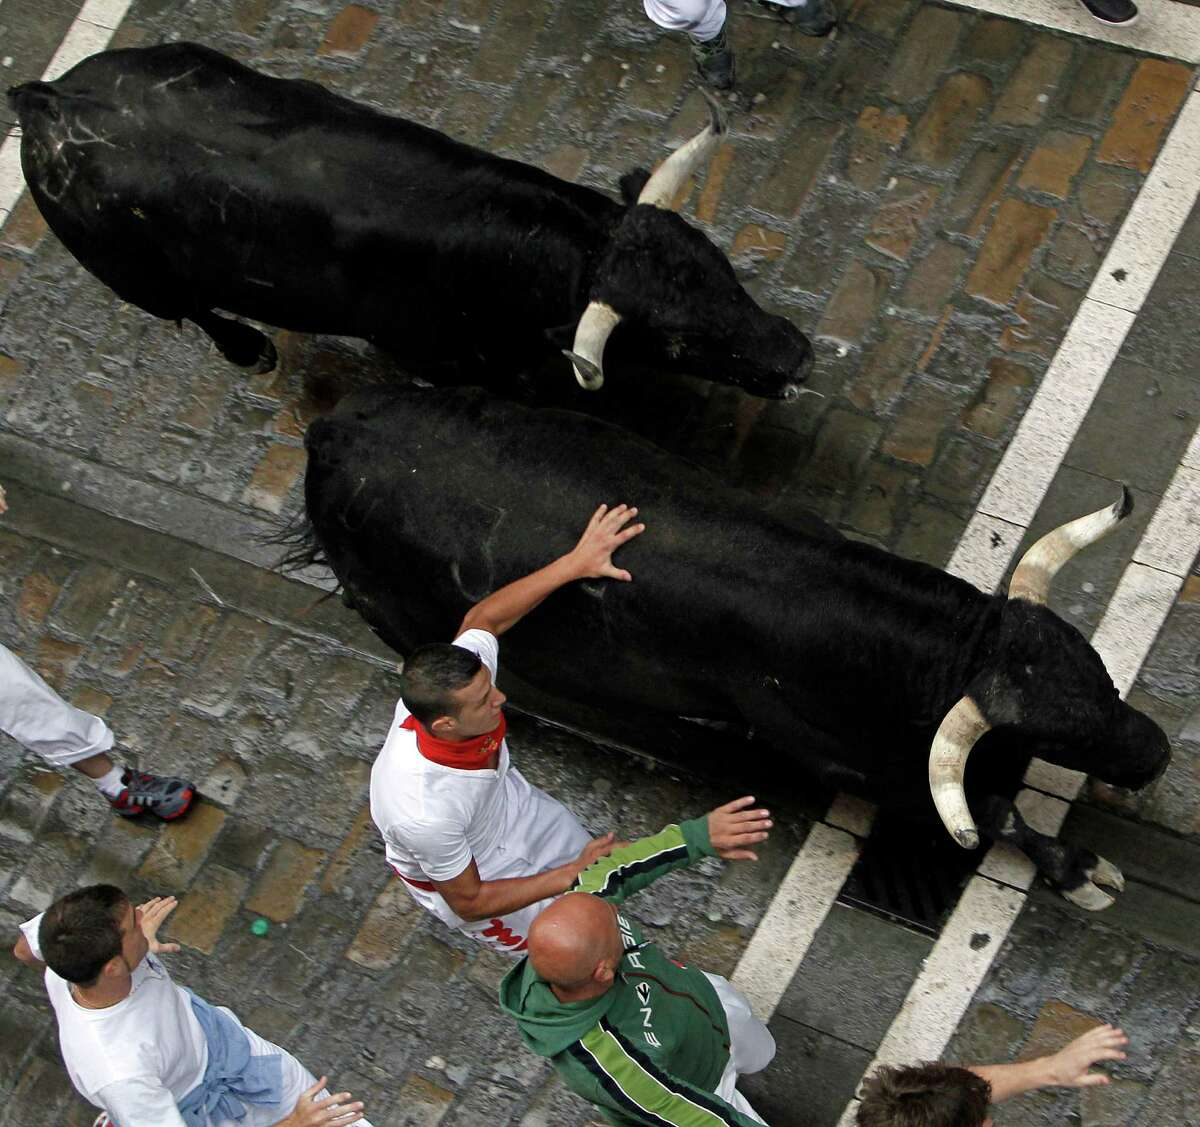 Revelers run with Dolores Aguirre Yabarra ranch fighting bulls during the running of the bulls of the San Fermin festival, in Pamplona, Spain, Saturday, July 7, 2012. The San Fermin running of the bulls festival became world famous with the publication of Ernest Hemingway's 1926 novel